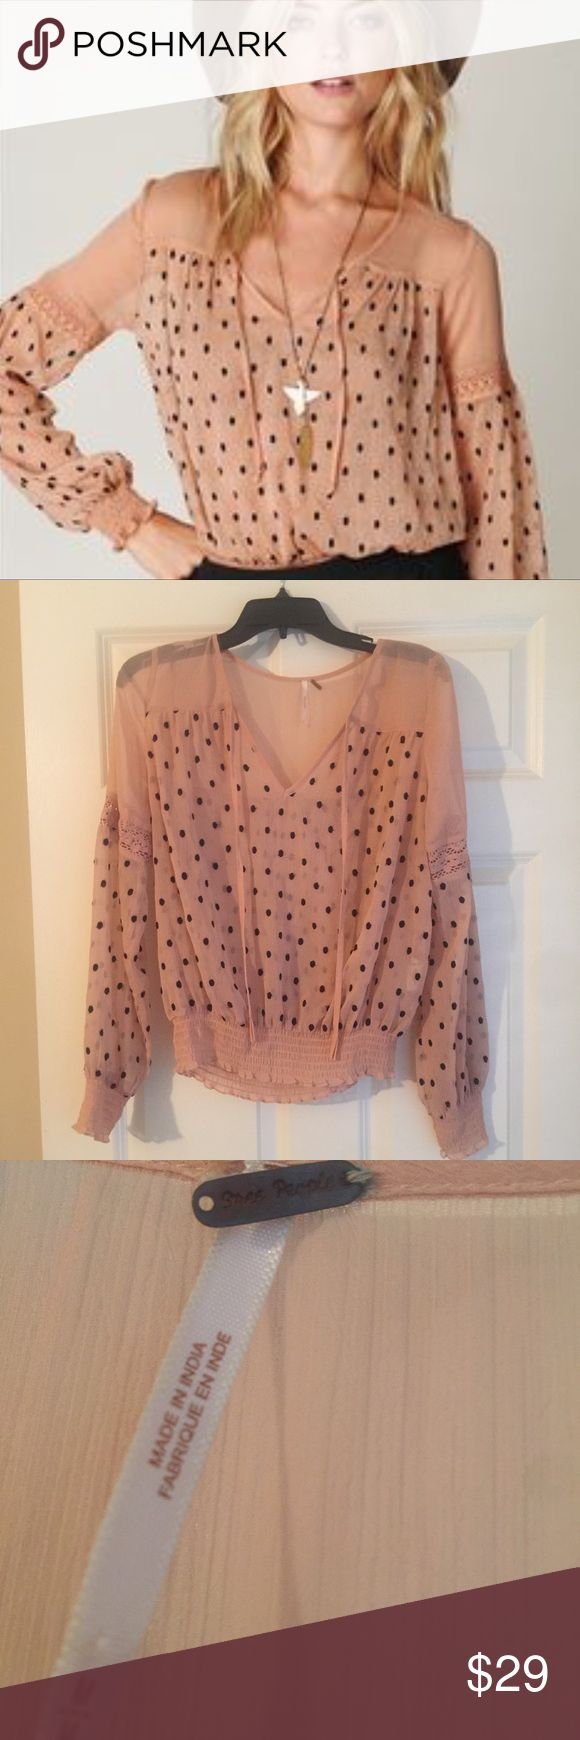 ✨ 1 DAY SALE ✨ Free People Boho Polka Dot Blouse In excellent used condition. Perfect for spring. It's sheer so I recommend wearing a cami underneath or you could even wear this top to the beach with a bikini underneath. There are a couple polka dots with extra threads, see photo. Free People Tops